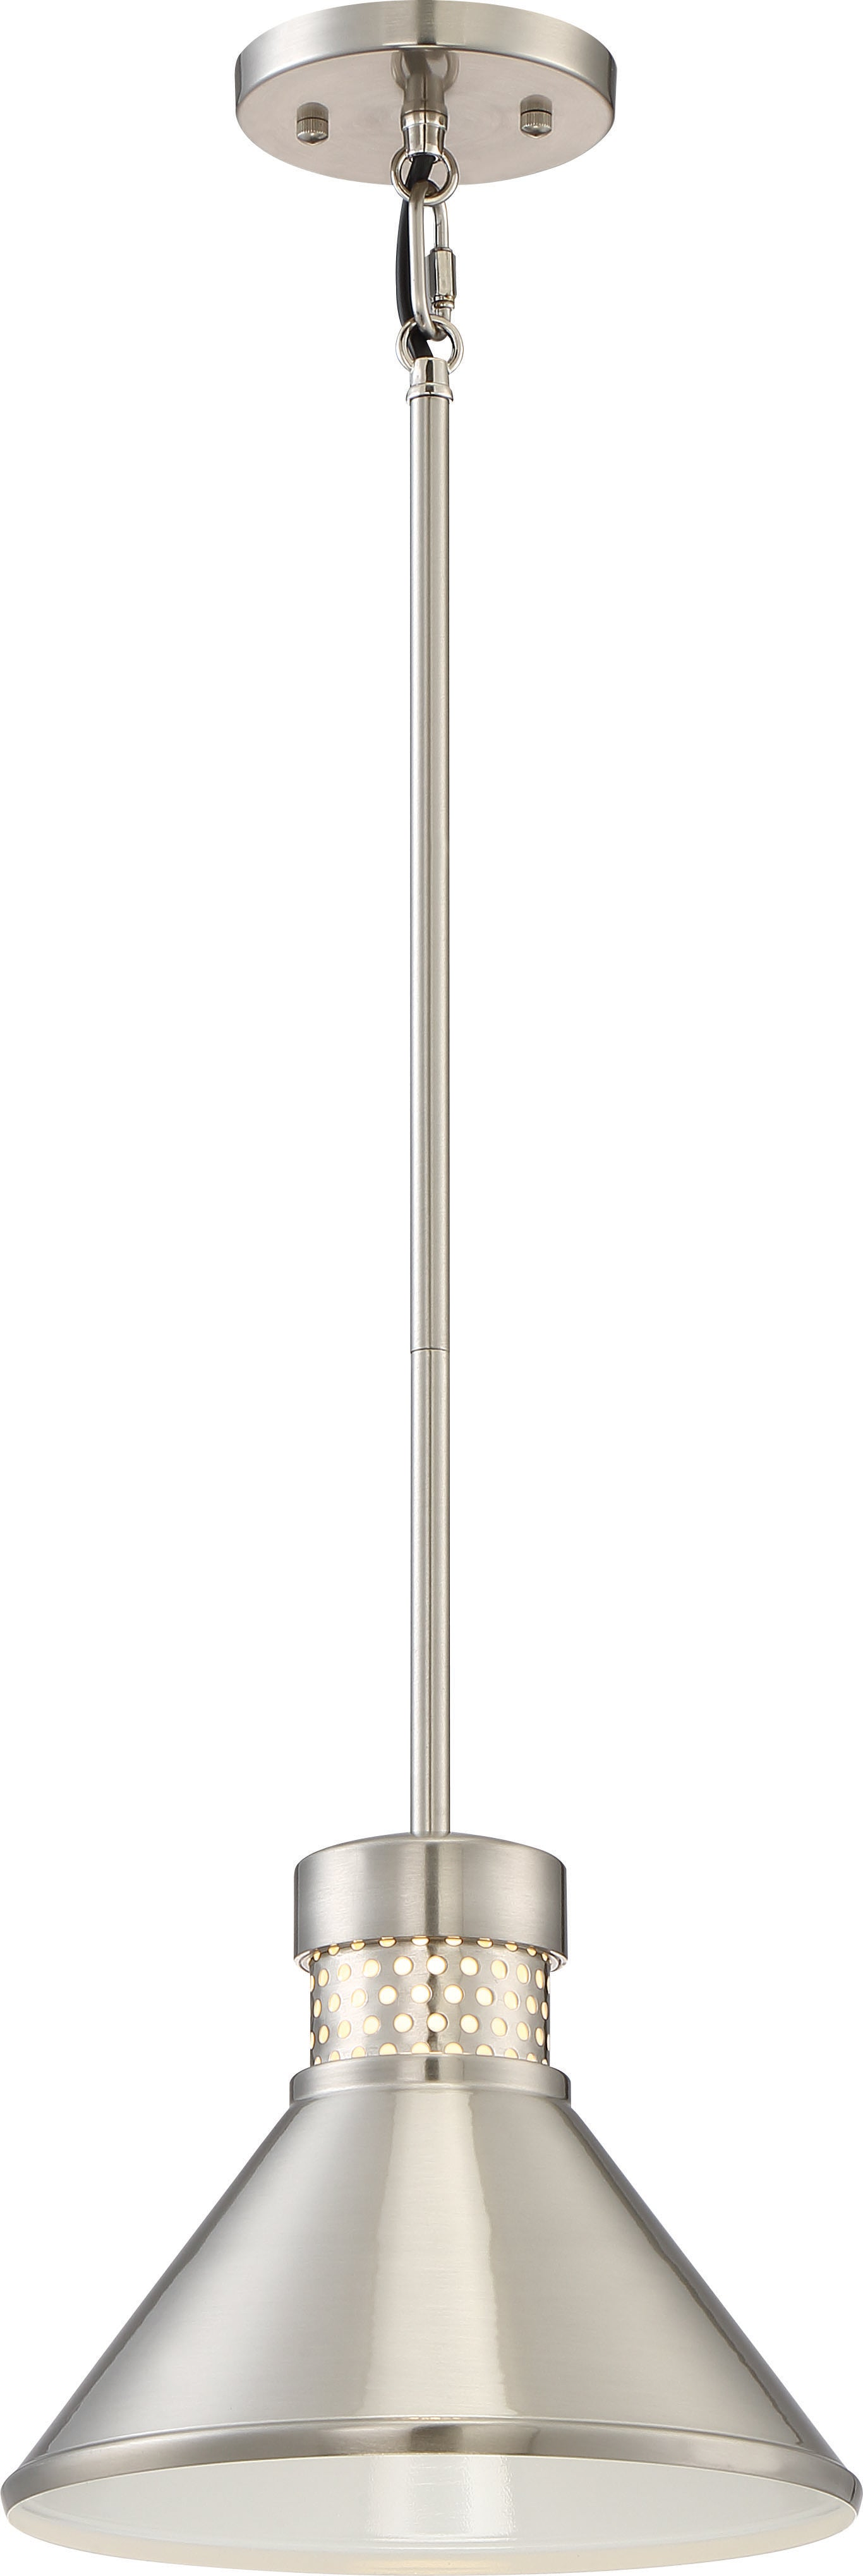 """Nuvo Doral 1-Light 12w 8"""" Small LED Pendant w/ White Accent in Brushed Nickel"""